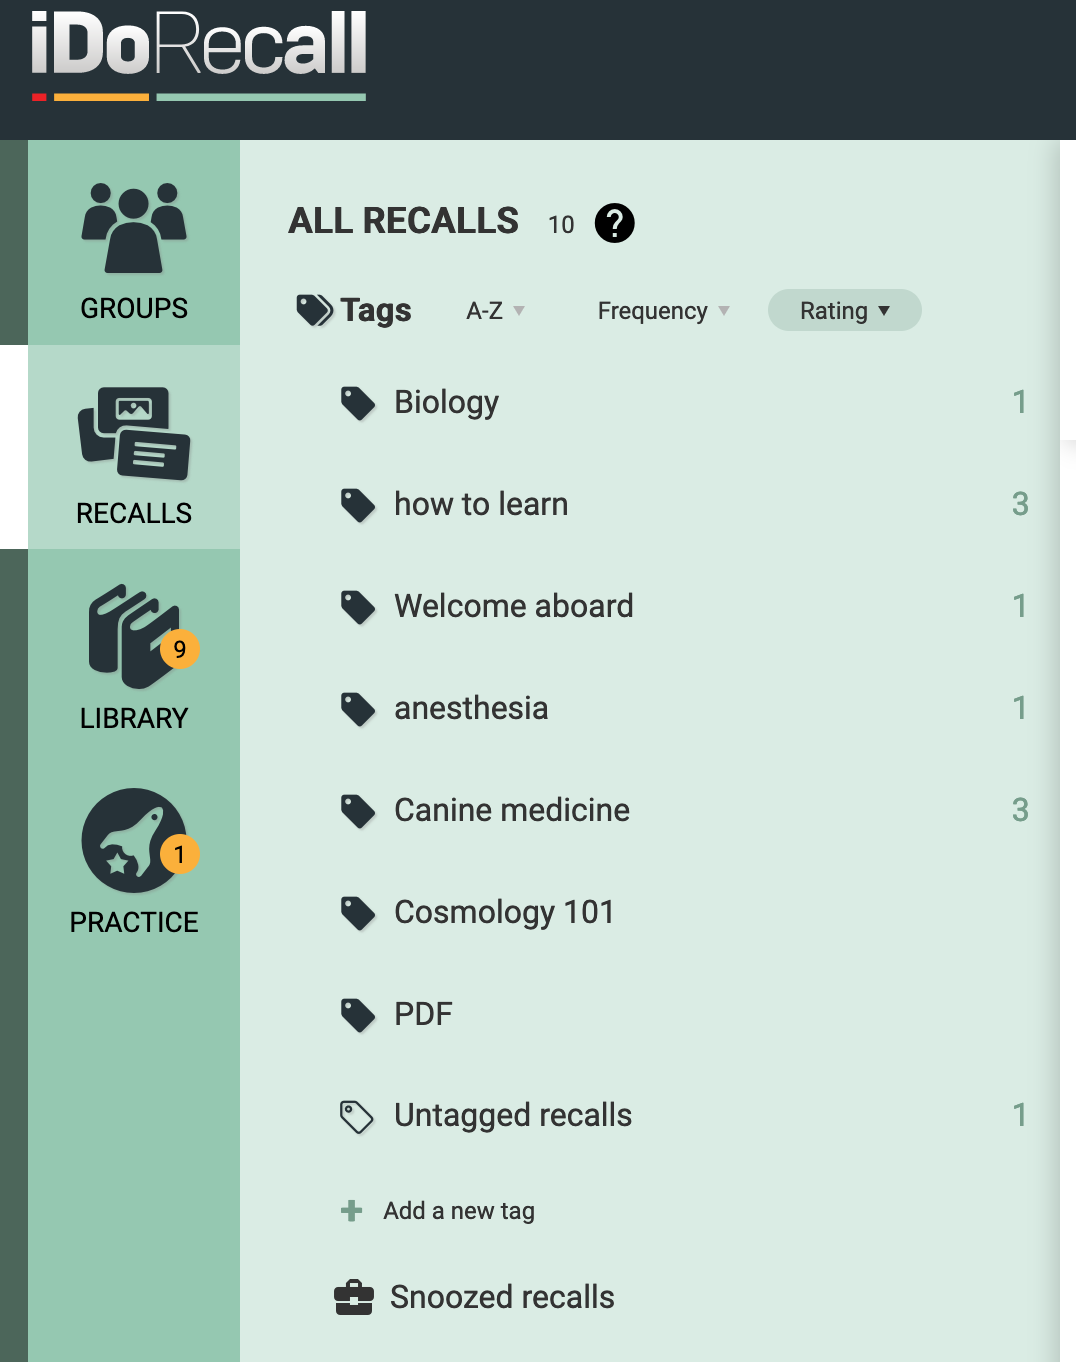 The Tags PAnel in the RECALLS section.